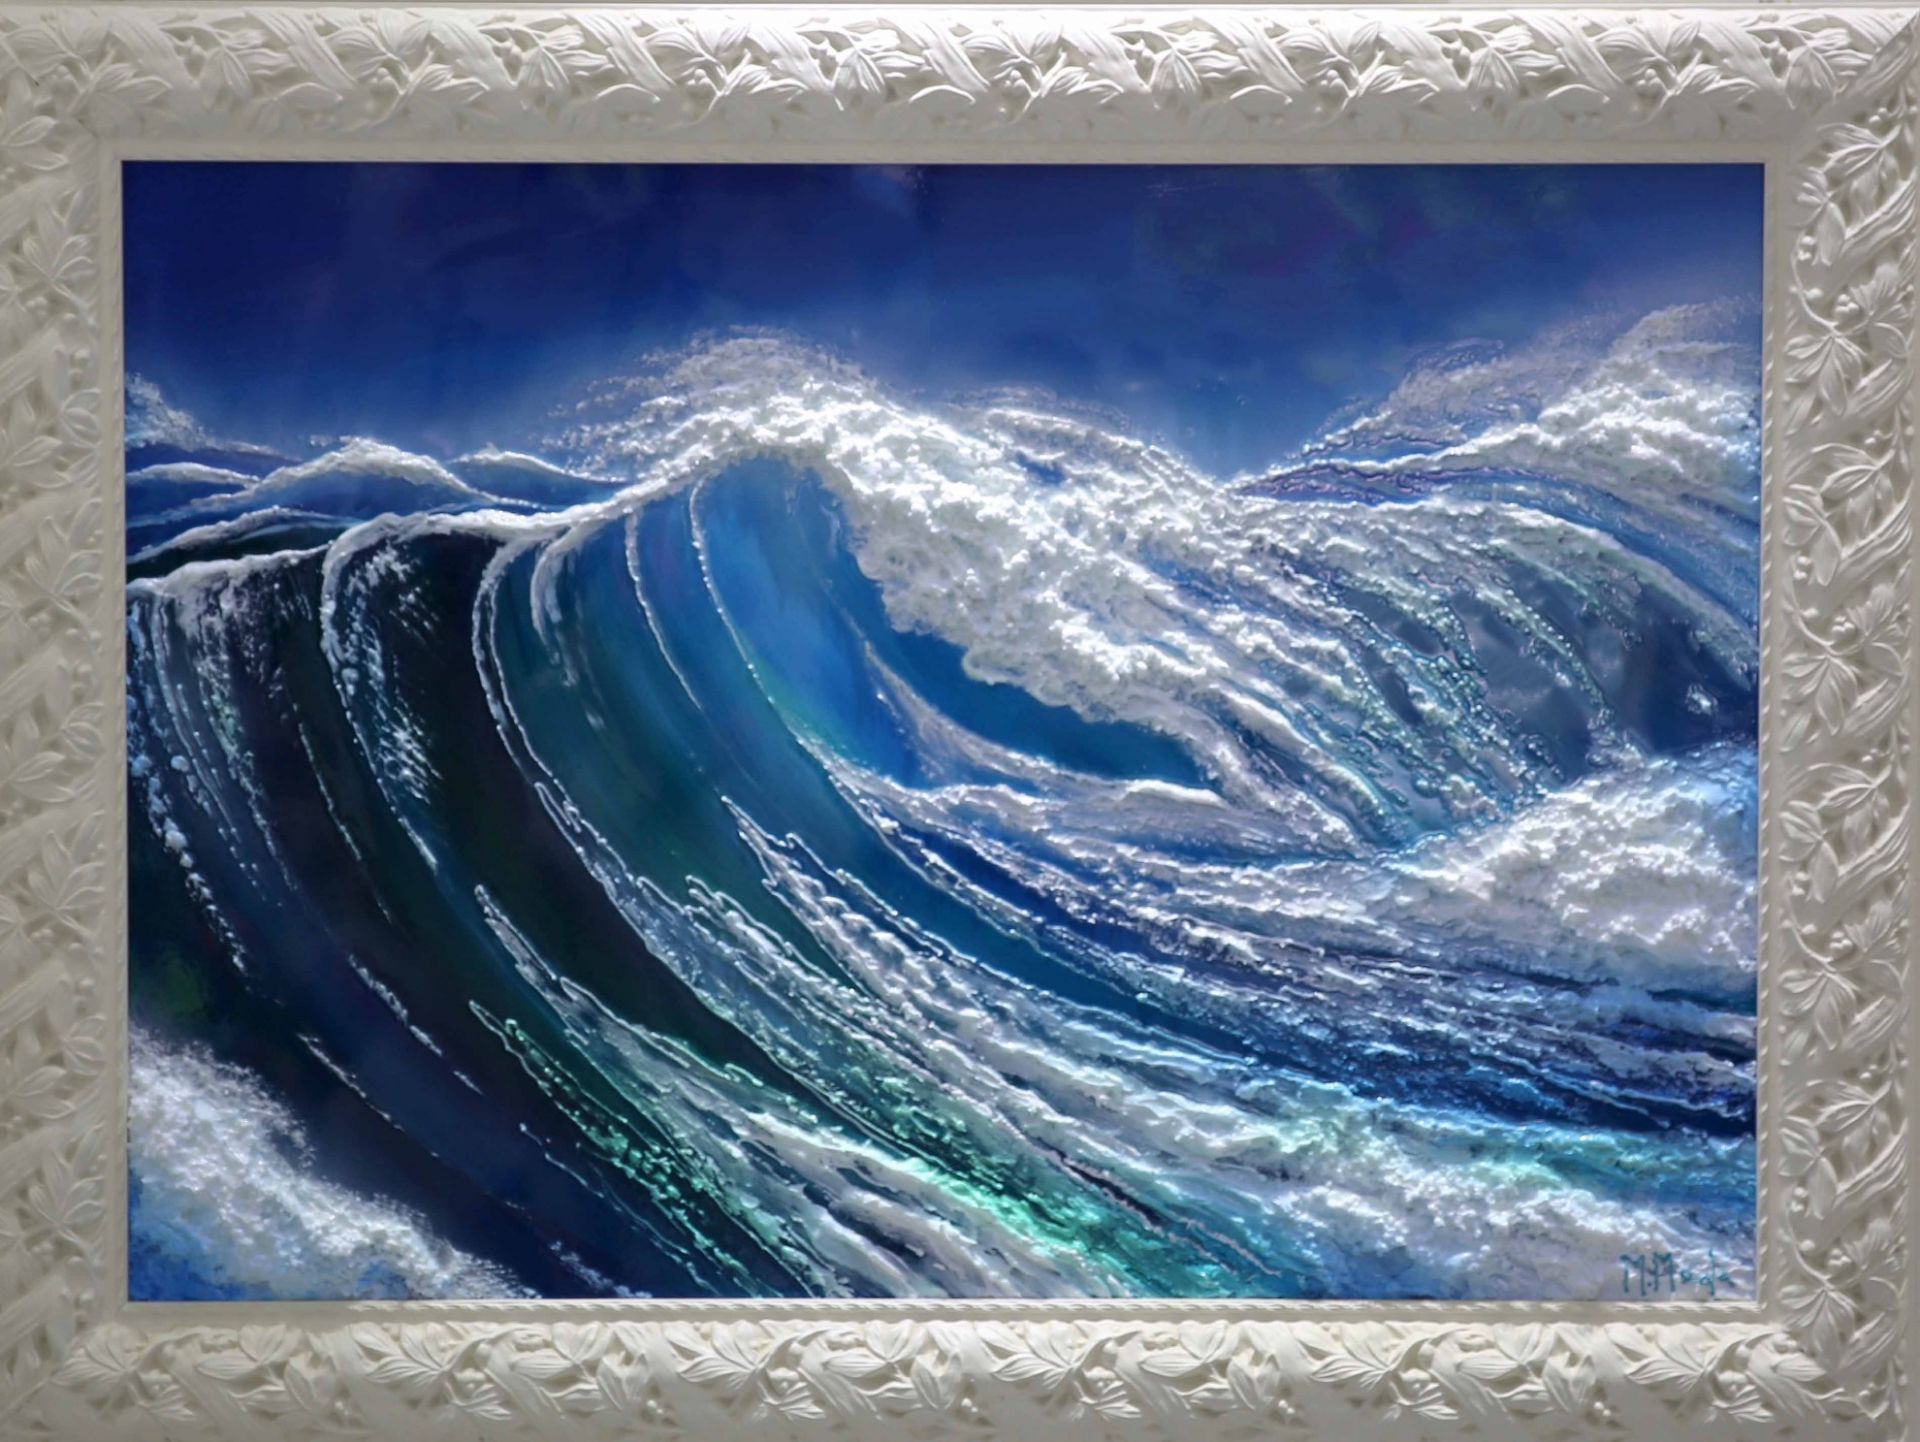 Massimo Meda (The Wave, framed cm188x120)